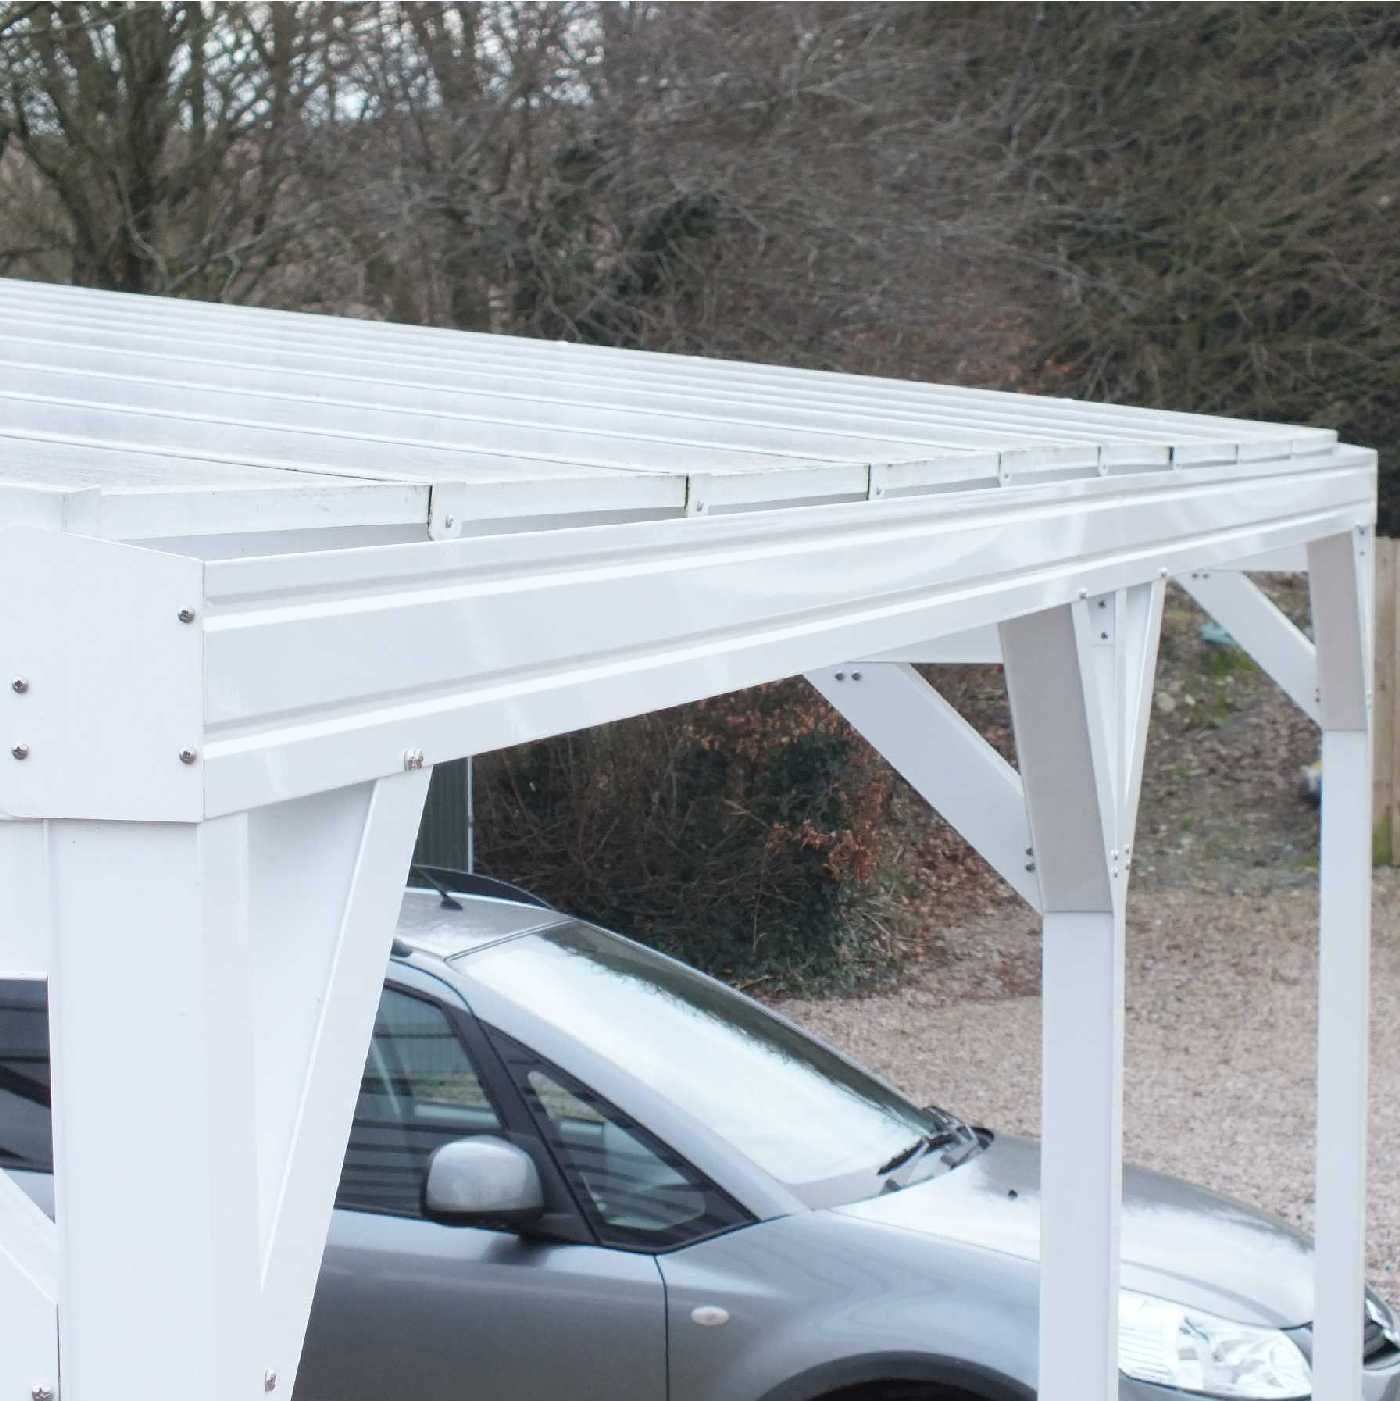 Omega Smart Free-Standing, MonoPitch Roof Canopy with 16mm Polycarbonate Glazing - 5.6m (W) x 3.5m (P), (6) Supporting Posts from Omega Build